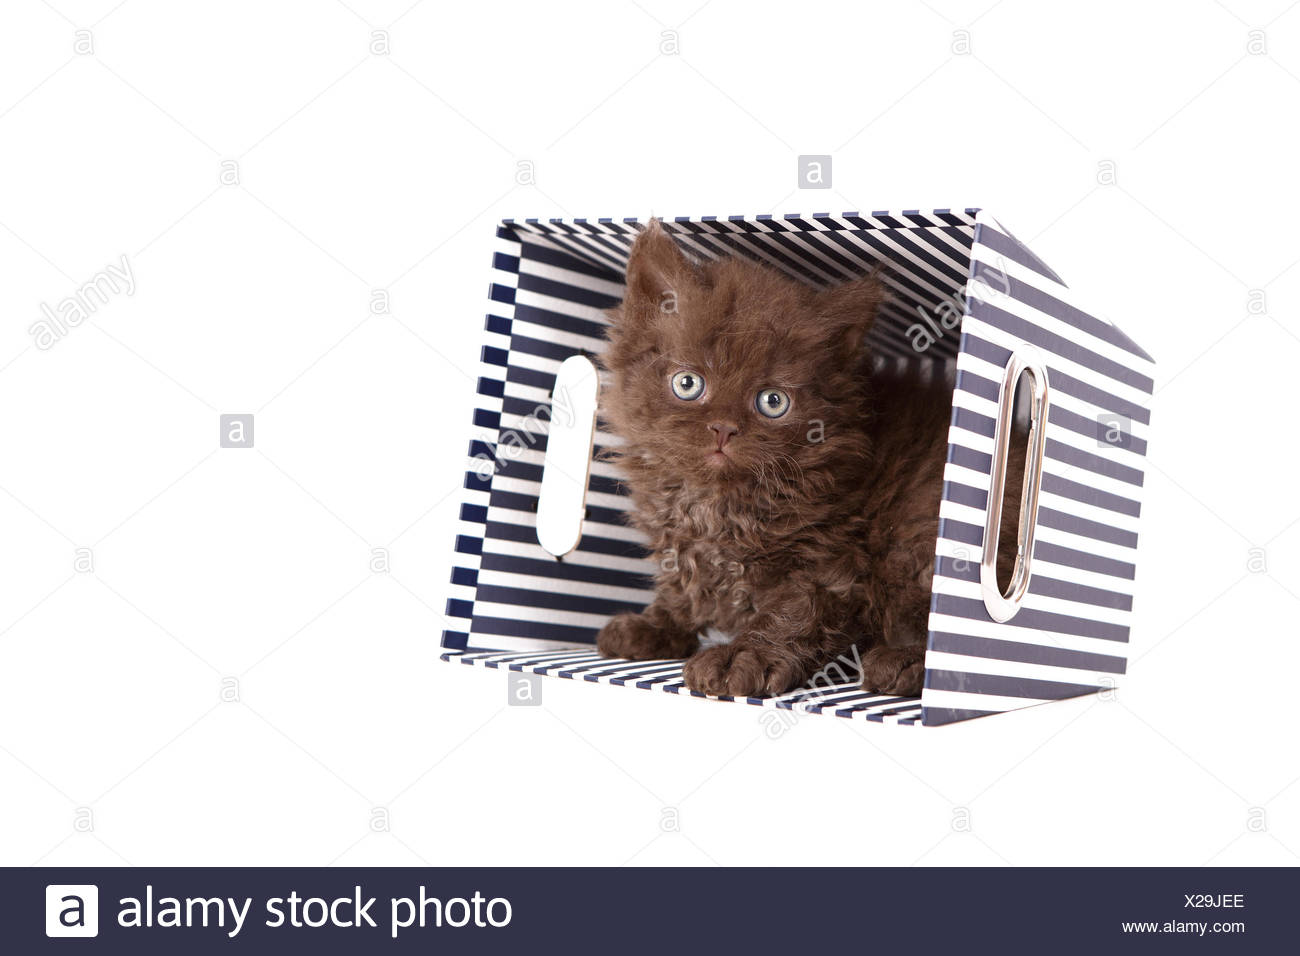 Selkirk Rex. Kitten (6 weeks old) sitting in cardboard box. Studio picture against a white background. Germany - Stock Image